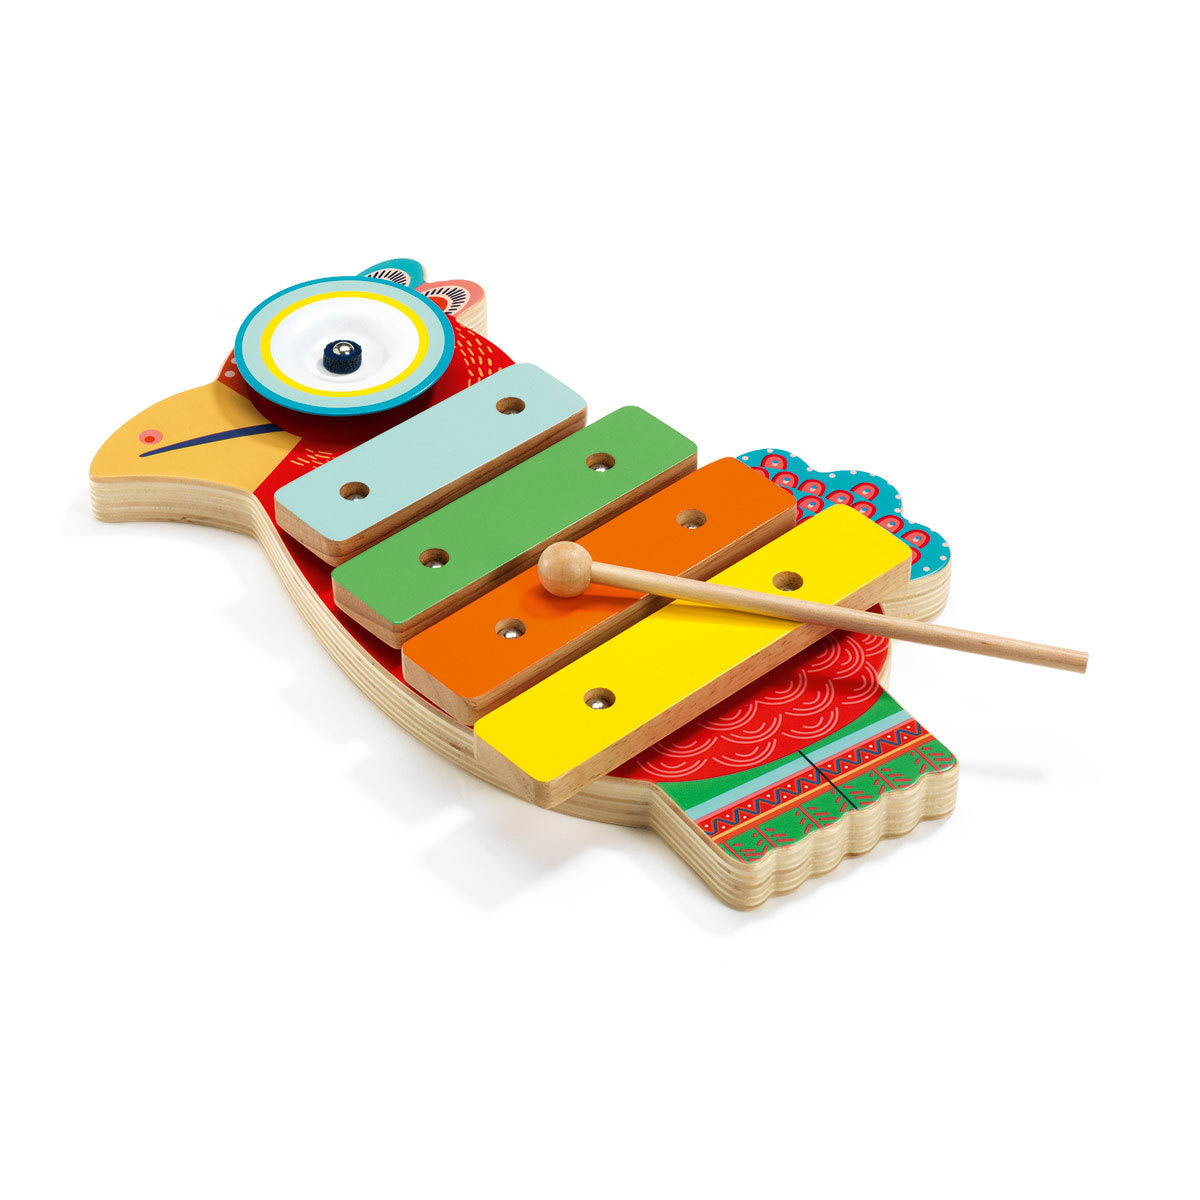 Mes premiers jouets Cymbale et Xylophone Animambo Cymbale et Xylophone Animambo